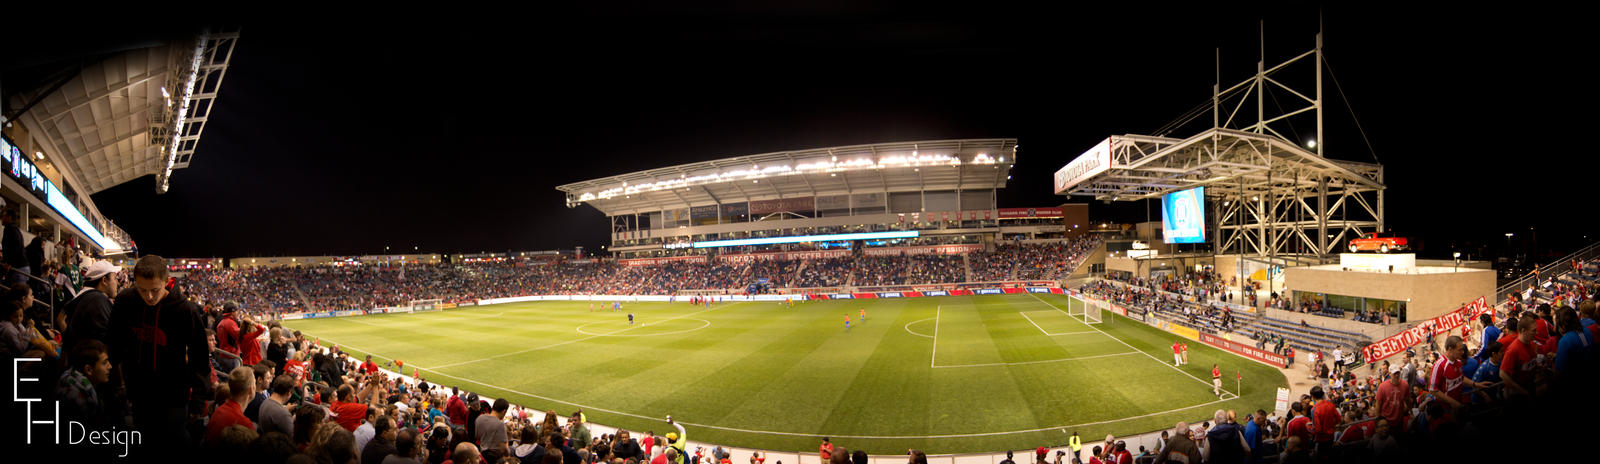 Chicago Fire Toyota Park by BonaFideChimp